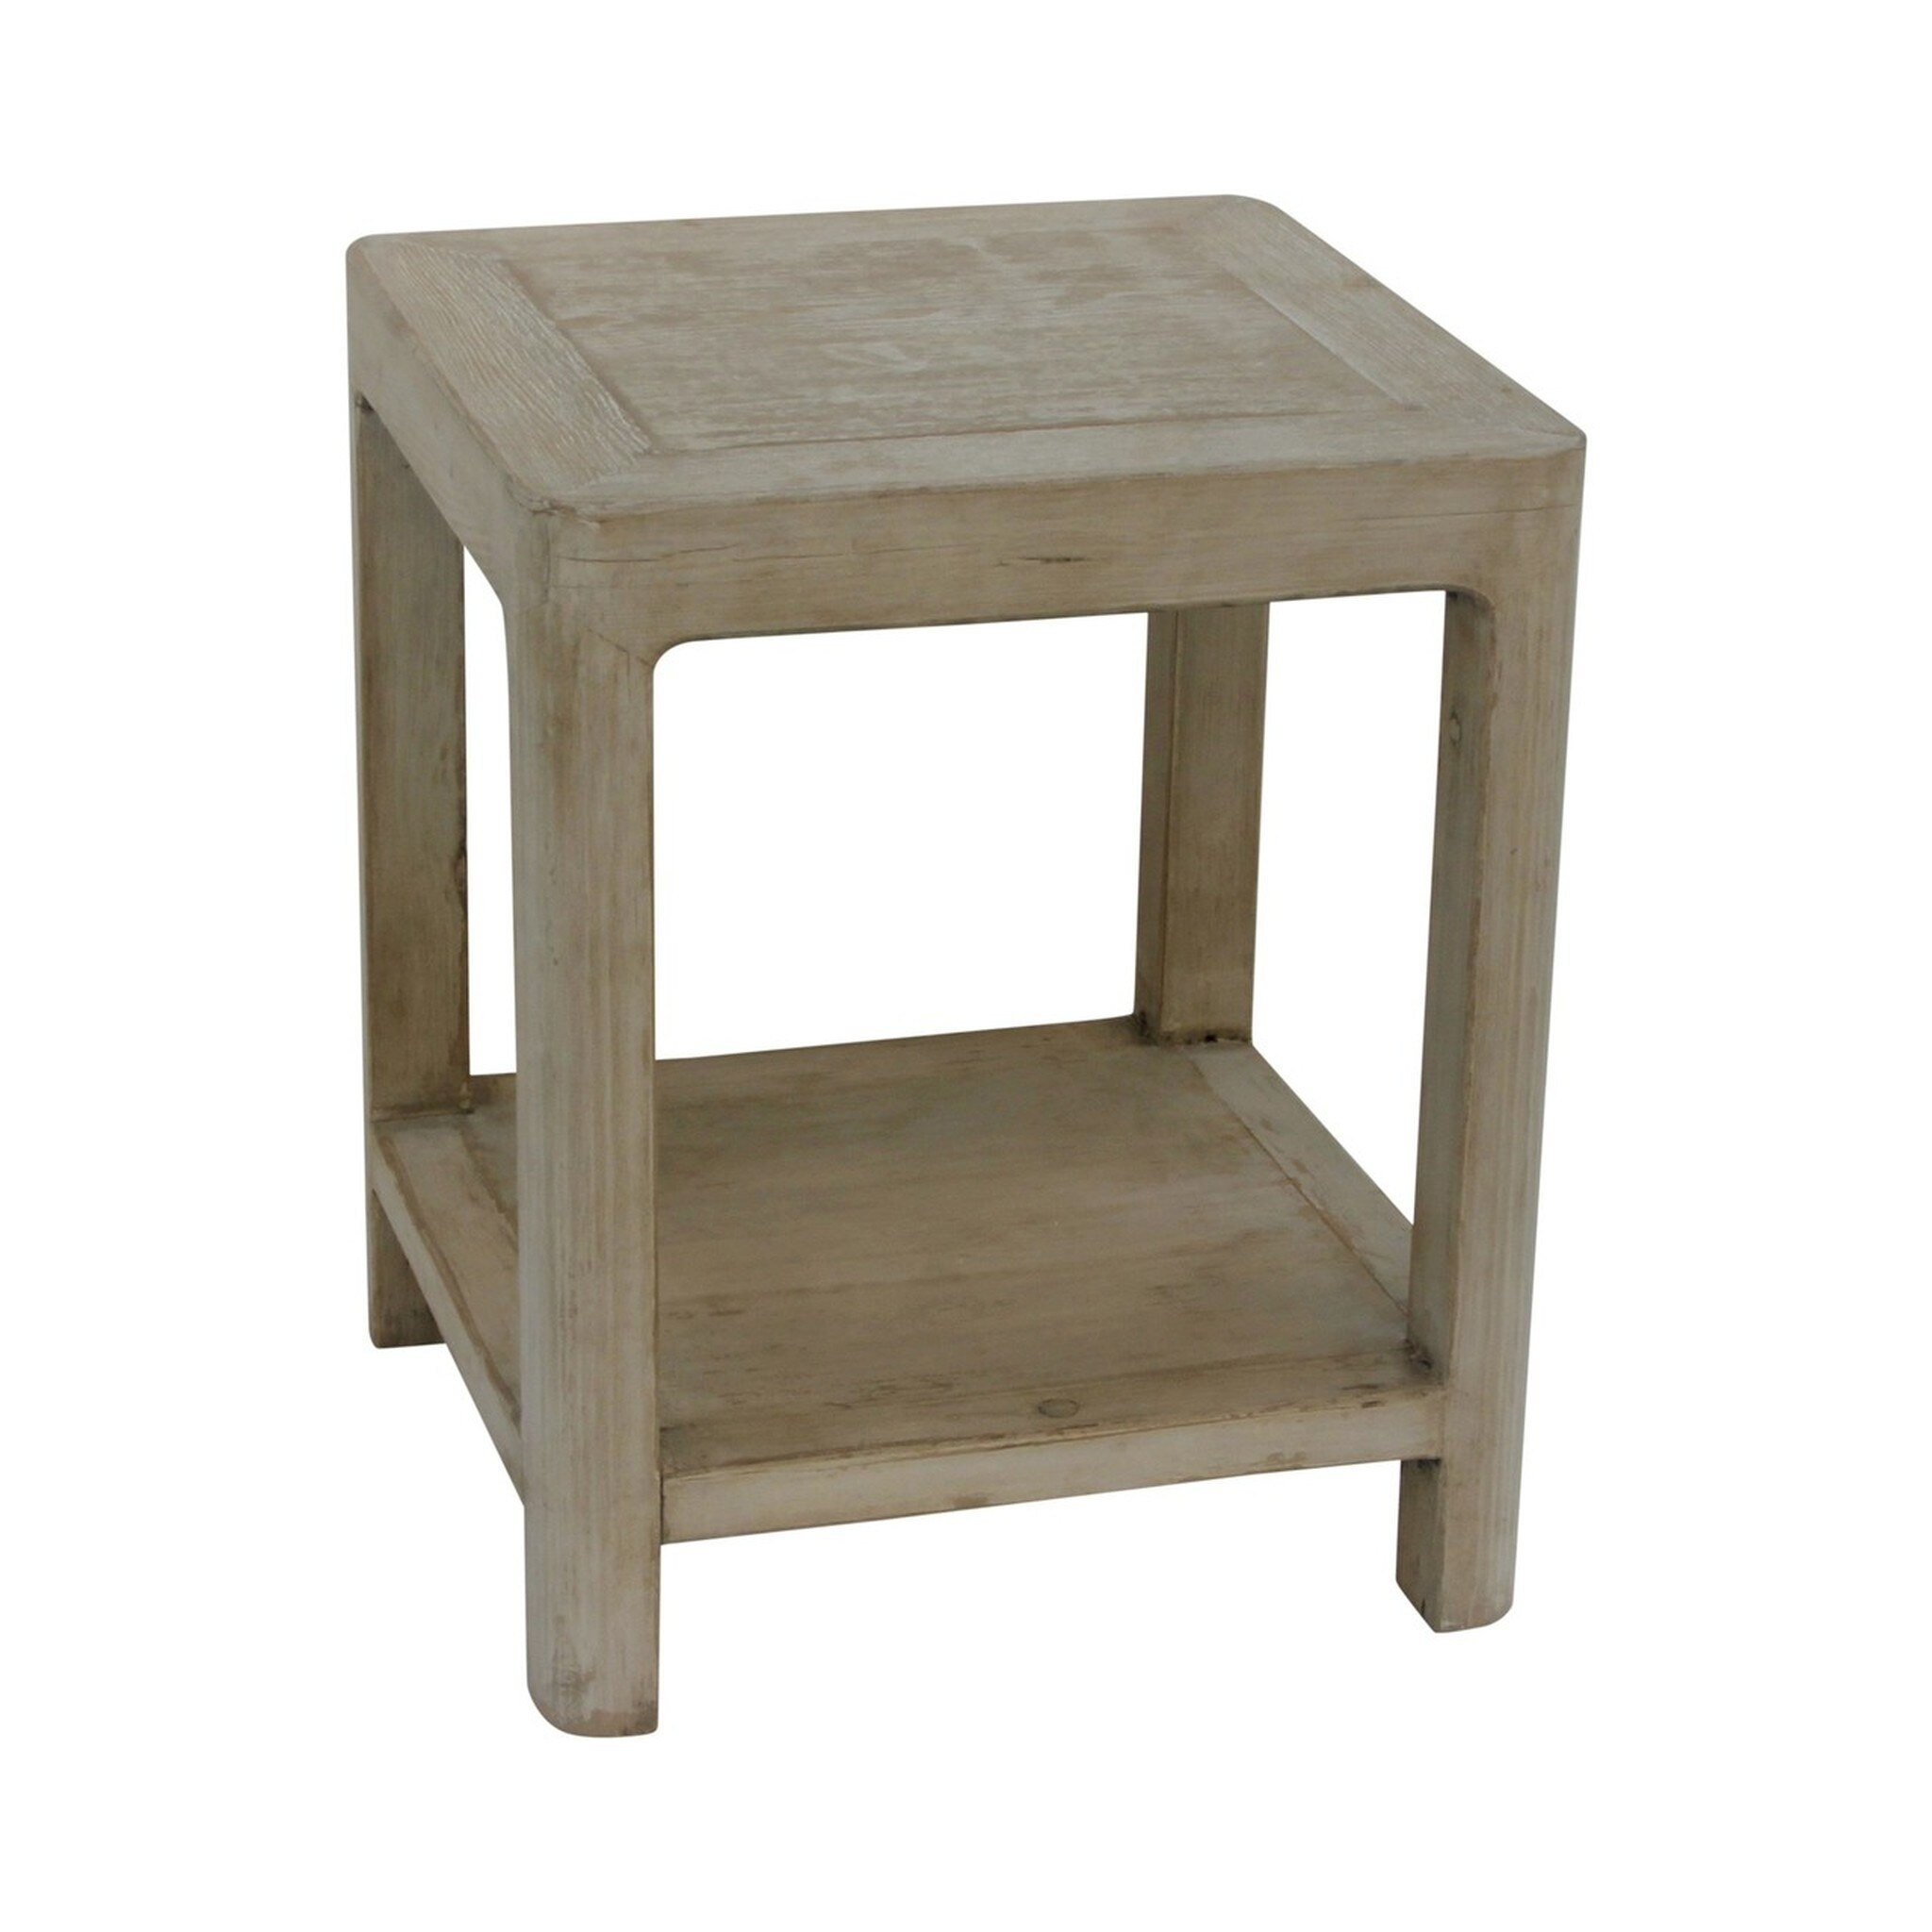 Peking Ming side table with round leg